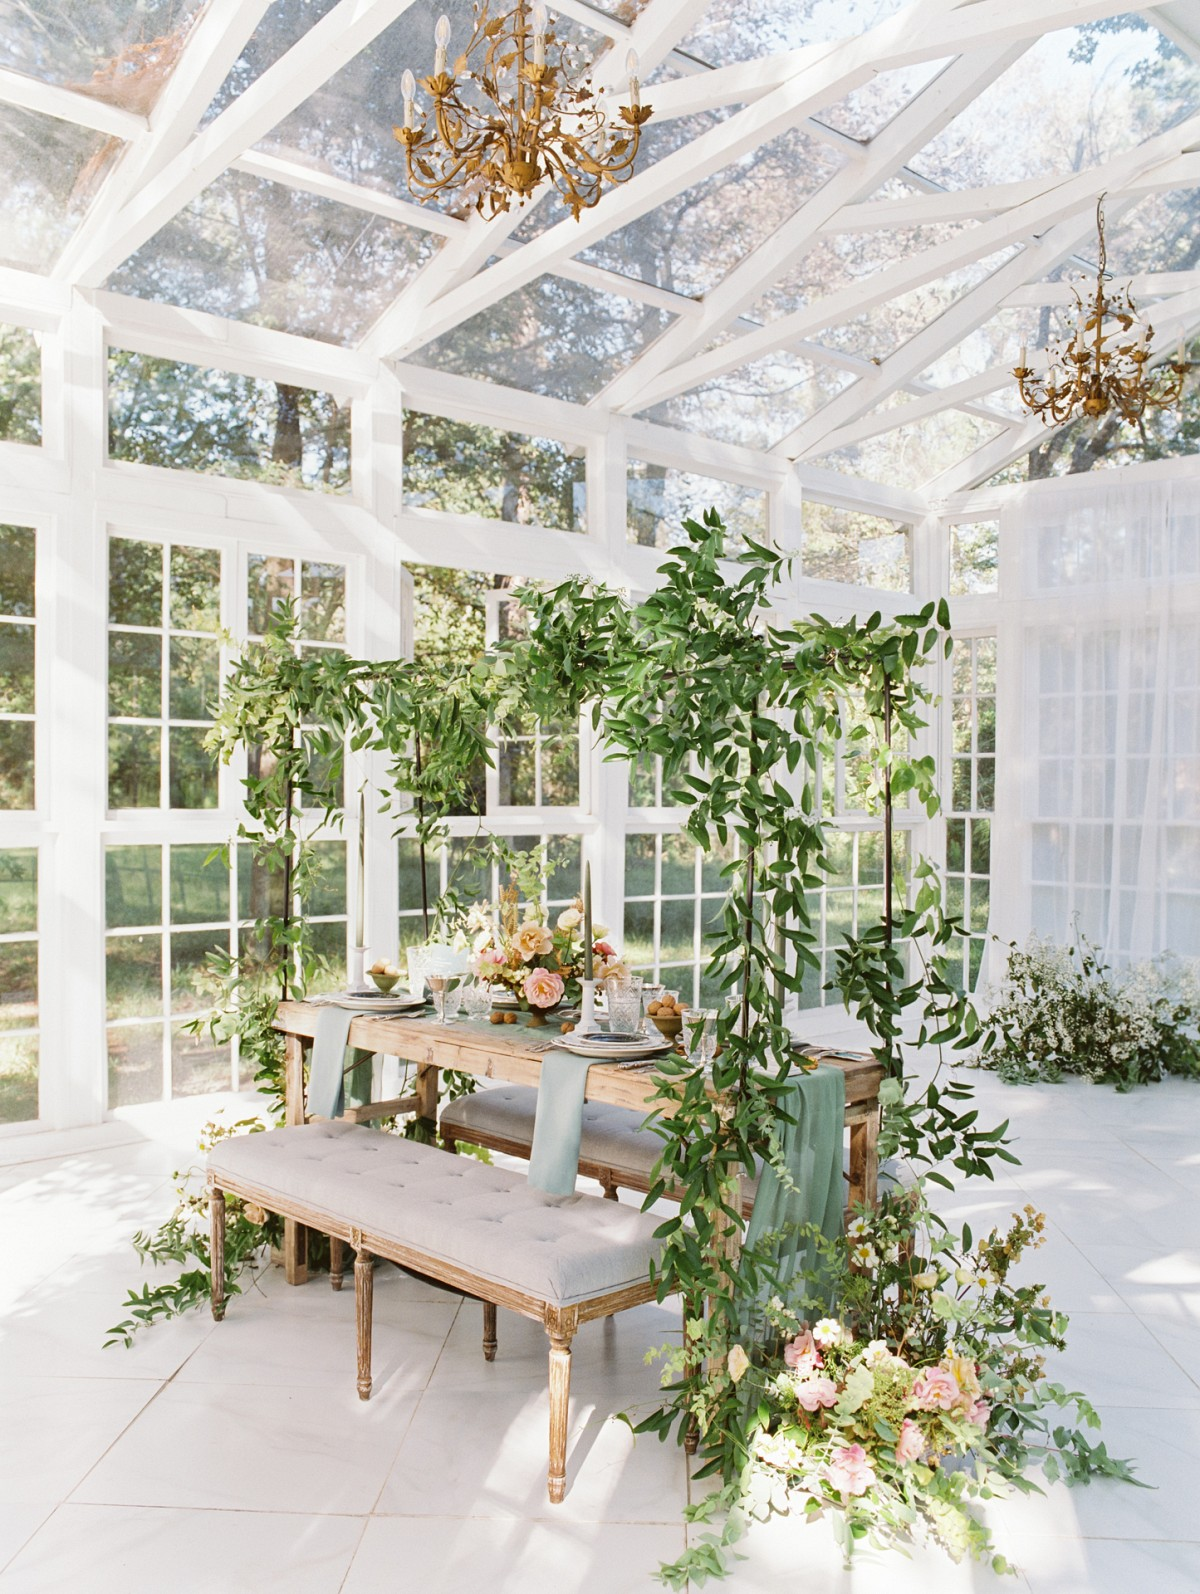 Autumnal Vow Renewal in Stunning Glasshouse